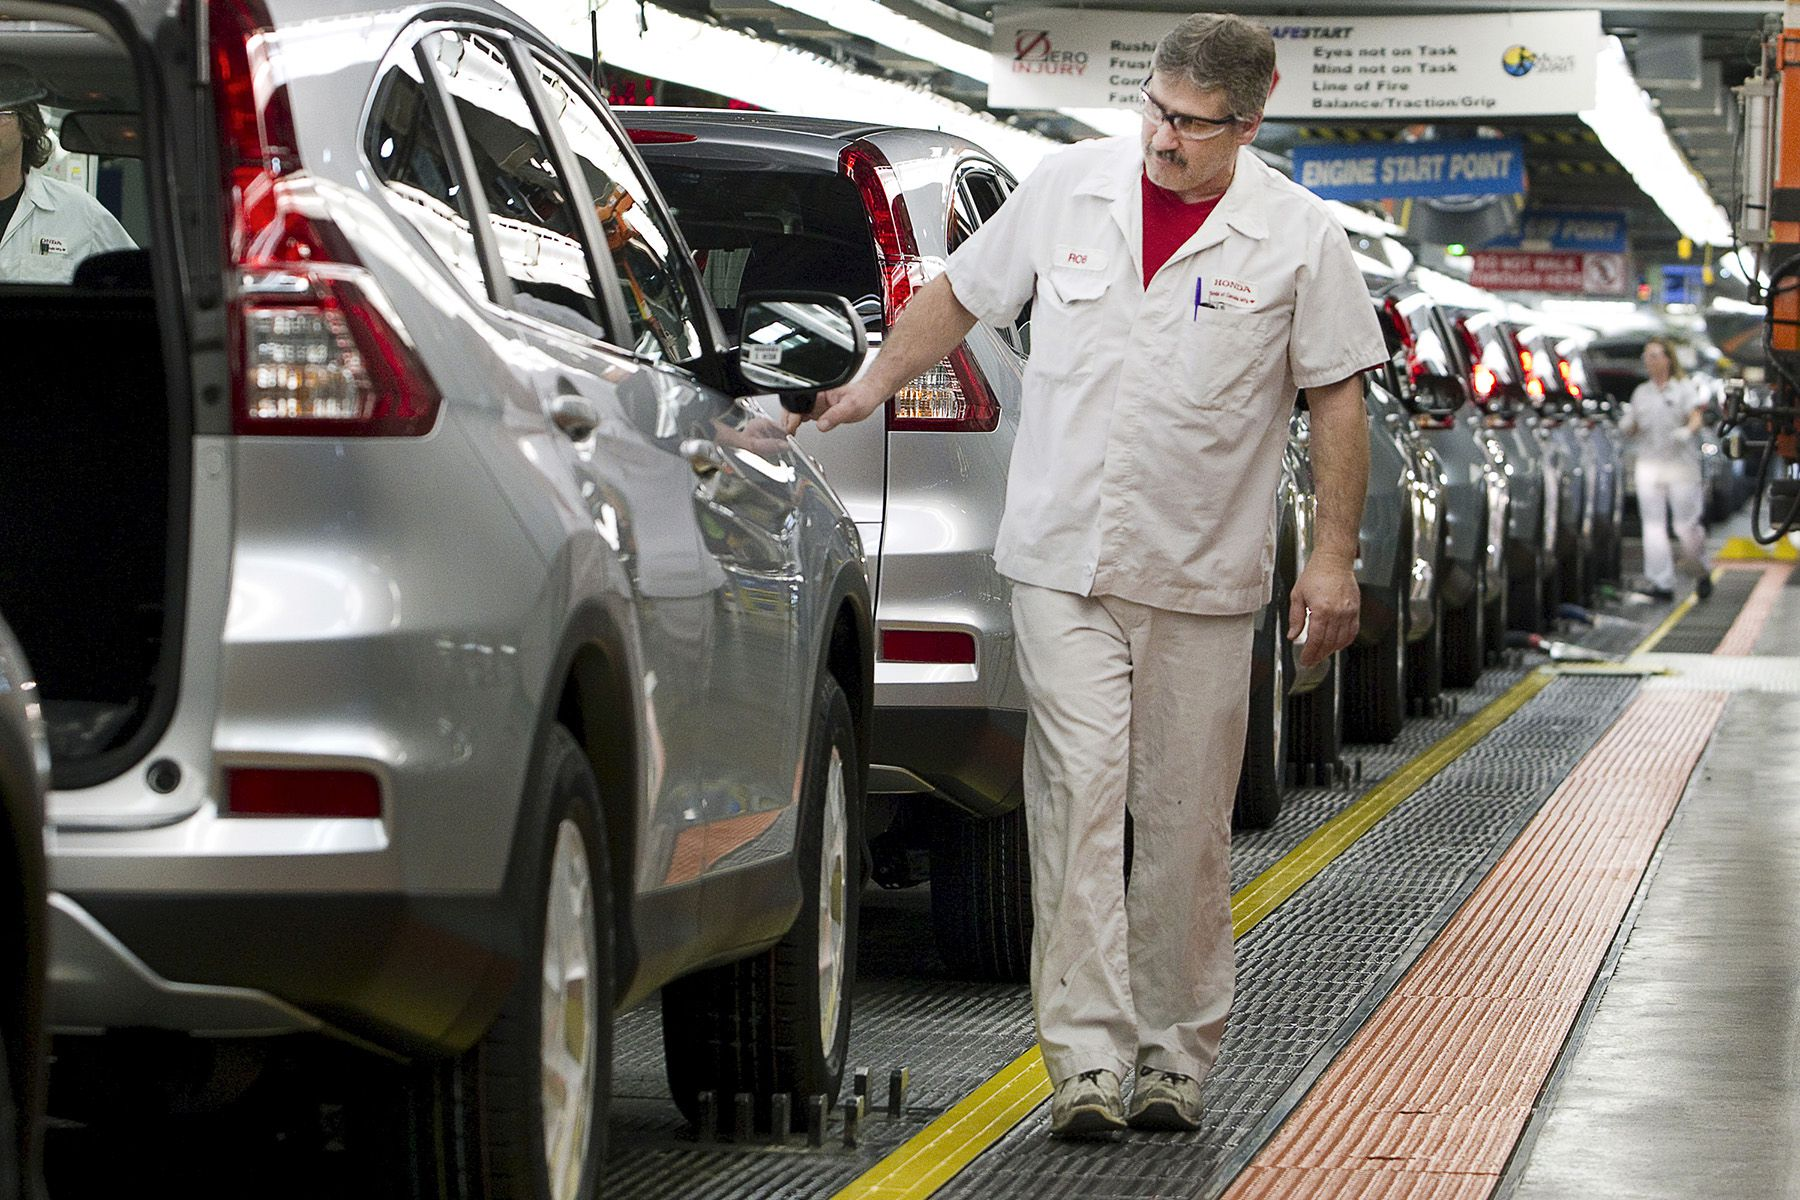 Production Associates inspect cars moving along assembly line at Honda manufacturing plant in Alliston, Ontario